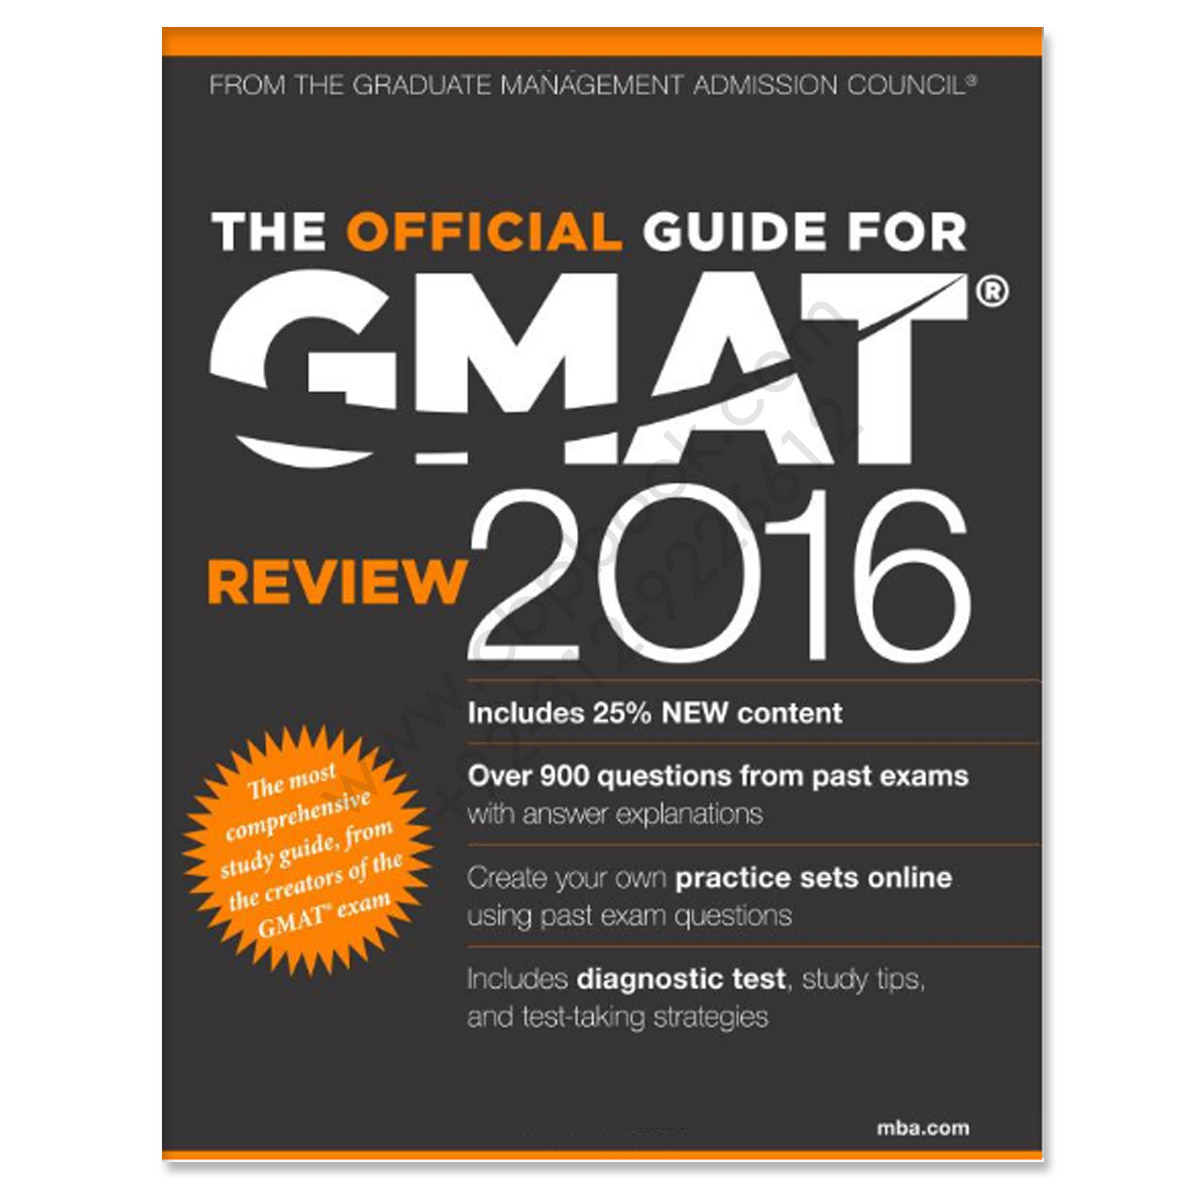 the official guide for gmat review 2016 with question bank